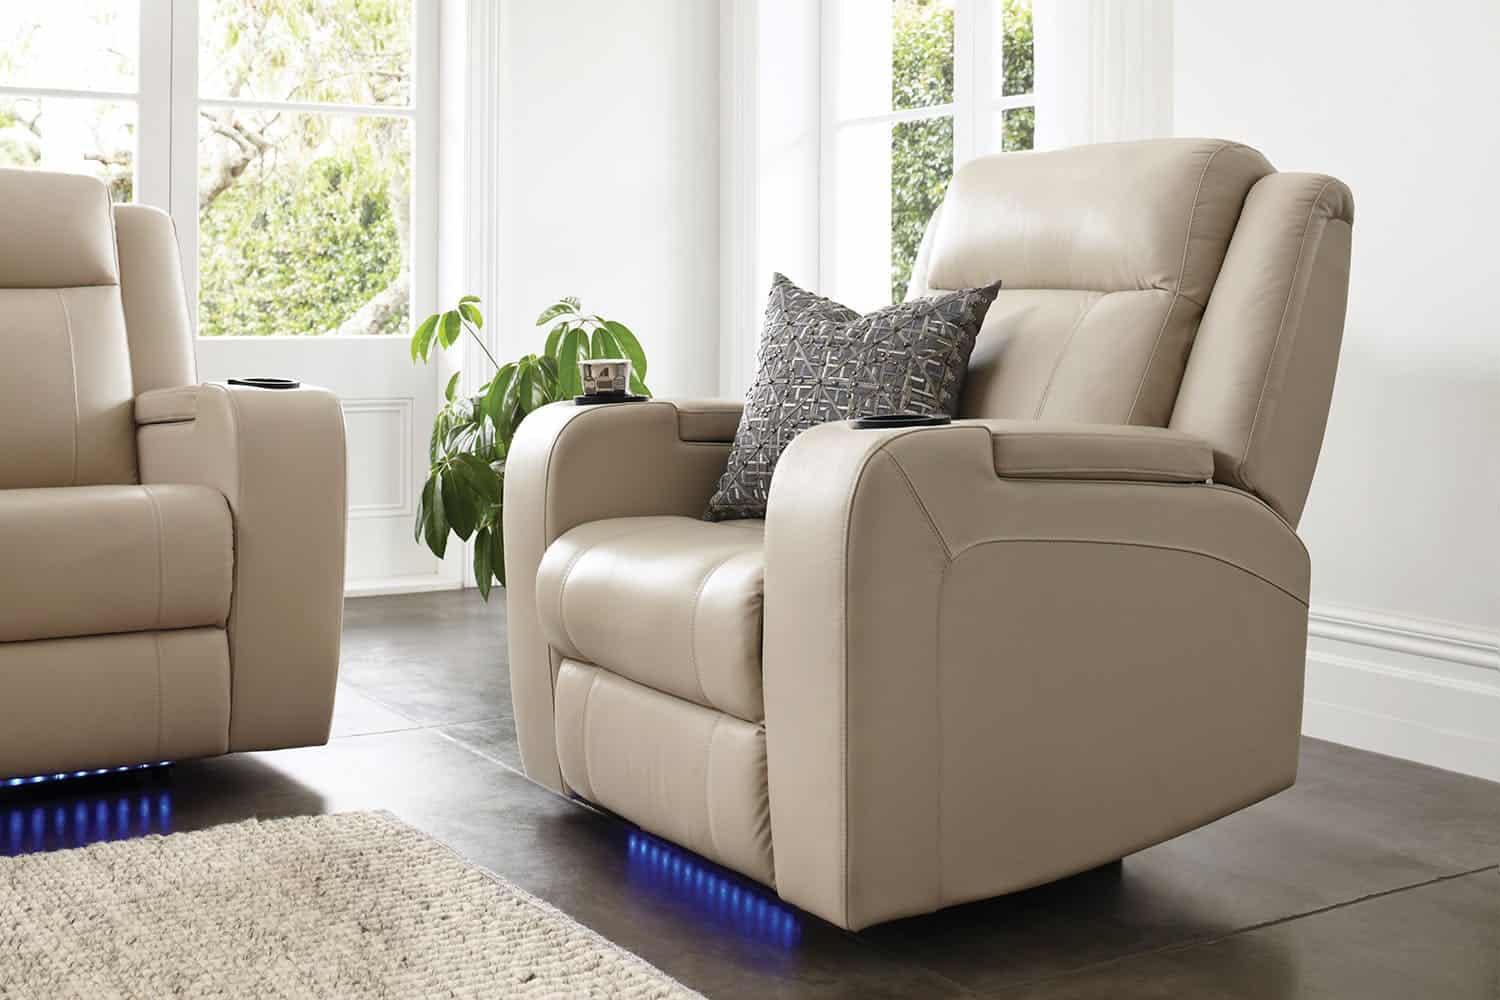 5 Outstanding Recliners for Sleeping – Awaken Refreshed in 2021